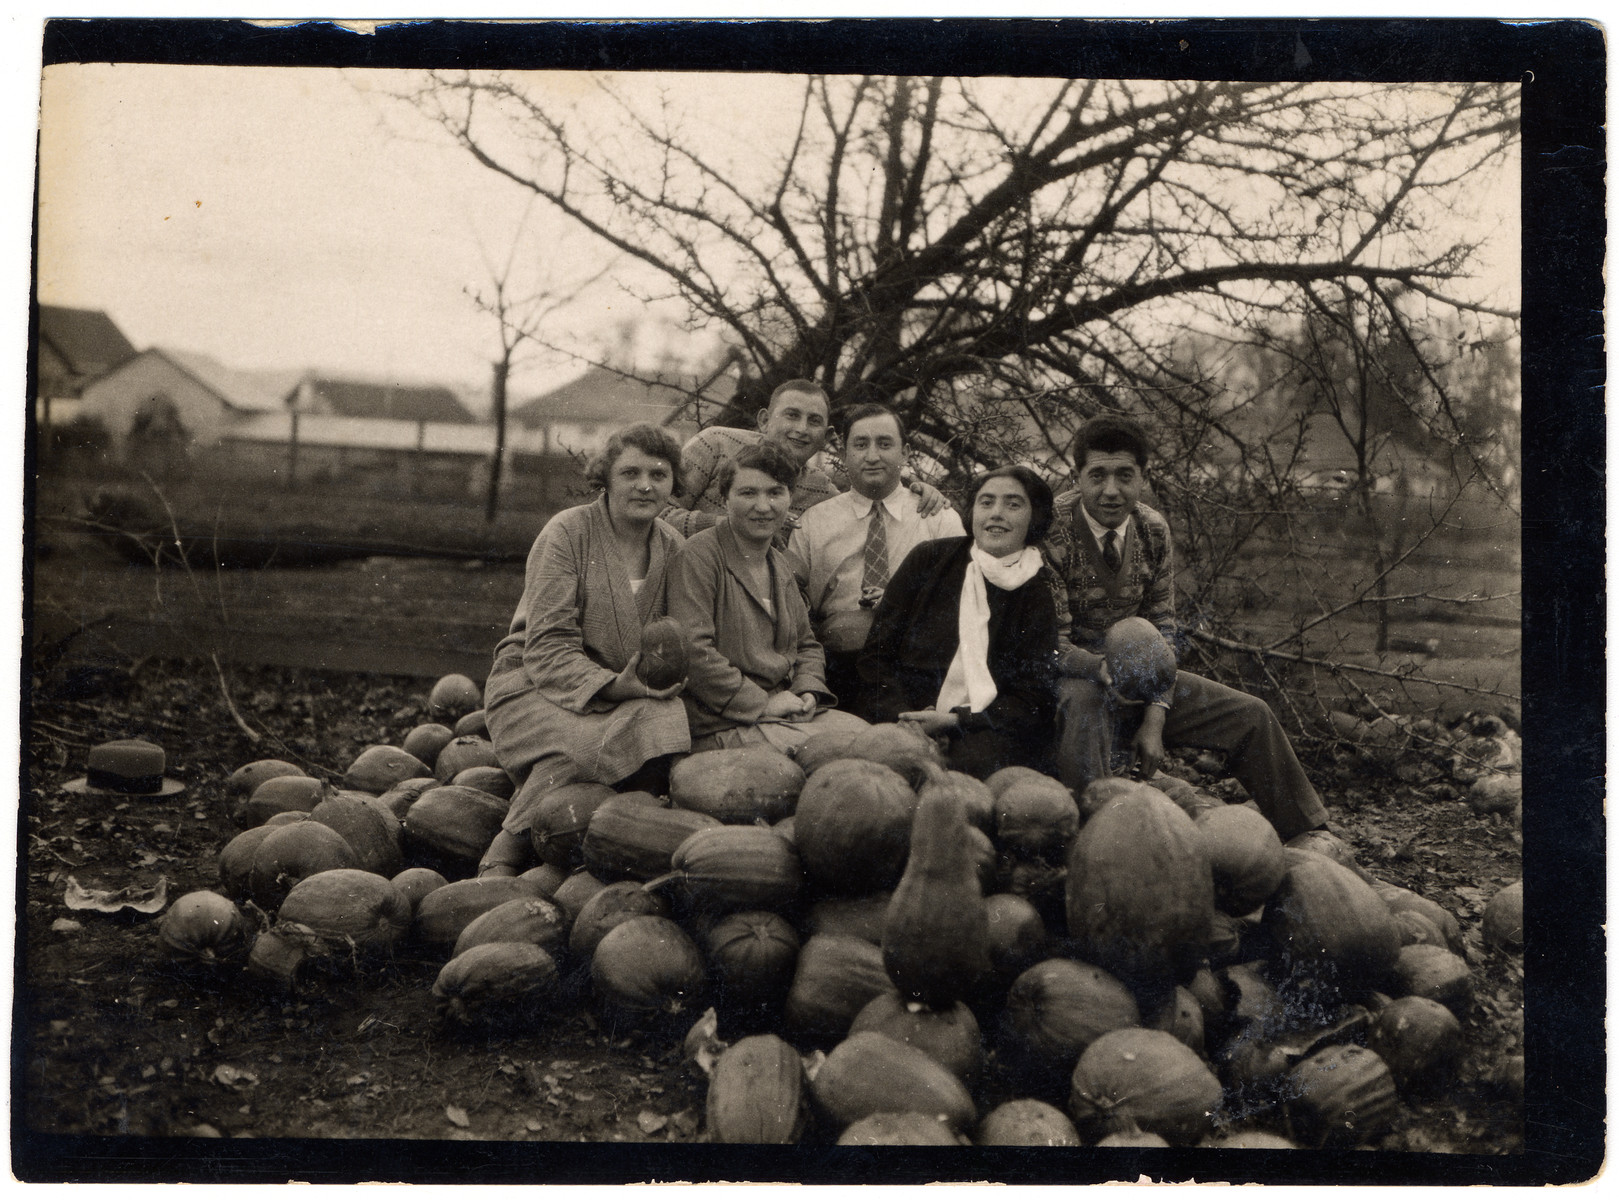 Members of the Lifschitz family pose in a pumpkin patch on the occasion of a visit from a relative from America.  The first two women on the left are unidentified.  Then viewed from left to right are Avraham David, his brother-in-law from America Joseph Sperling, Esther and Mendel Mechlowitz.